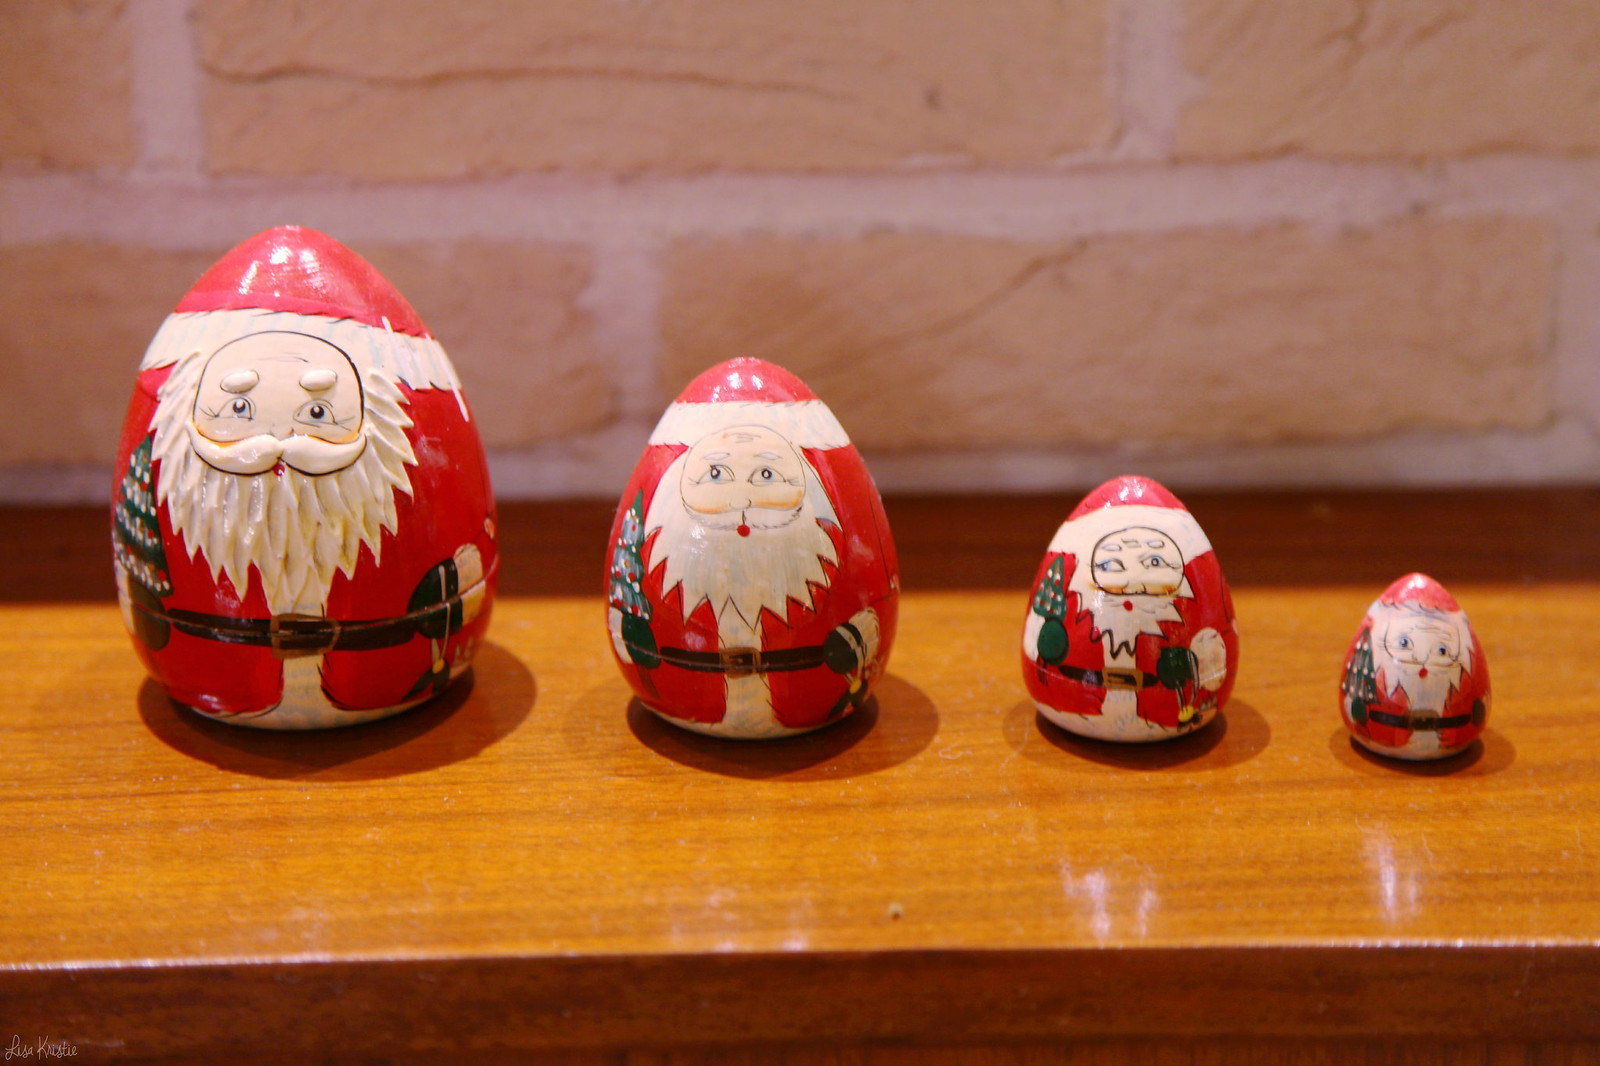 Santa santaclause clause egg figures matryoshka russian wooden dolls